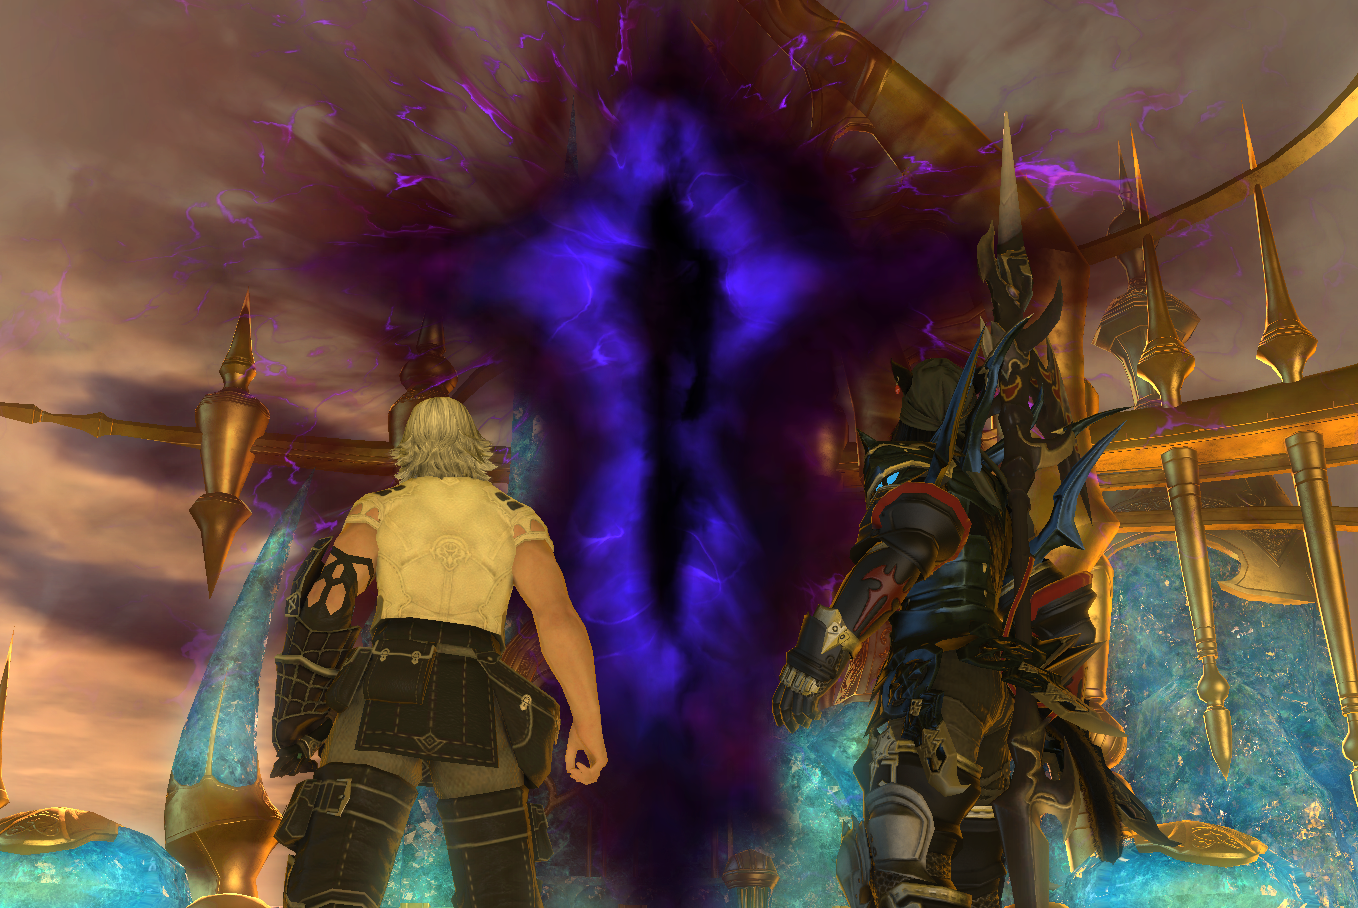 Final Fantasy XIV: A Realm Reborn - A Crack into the Void